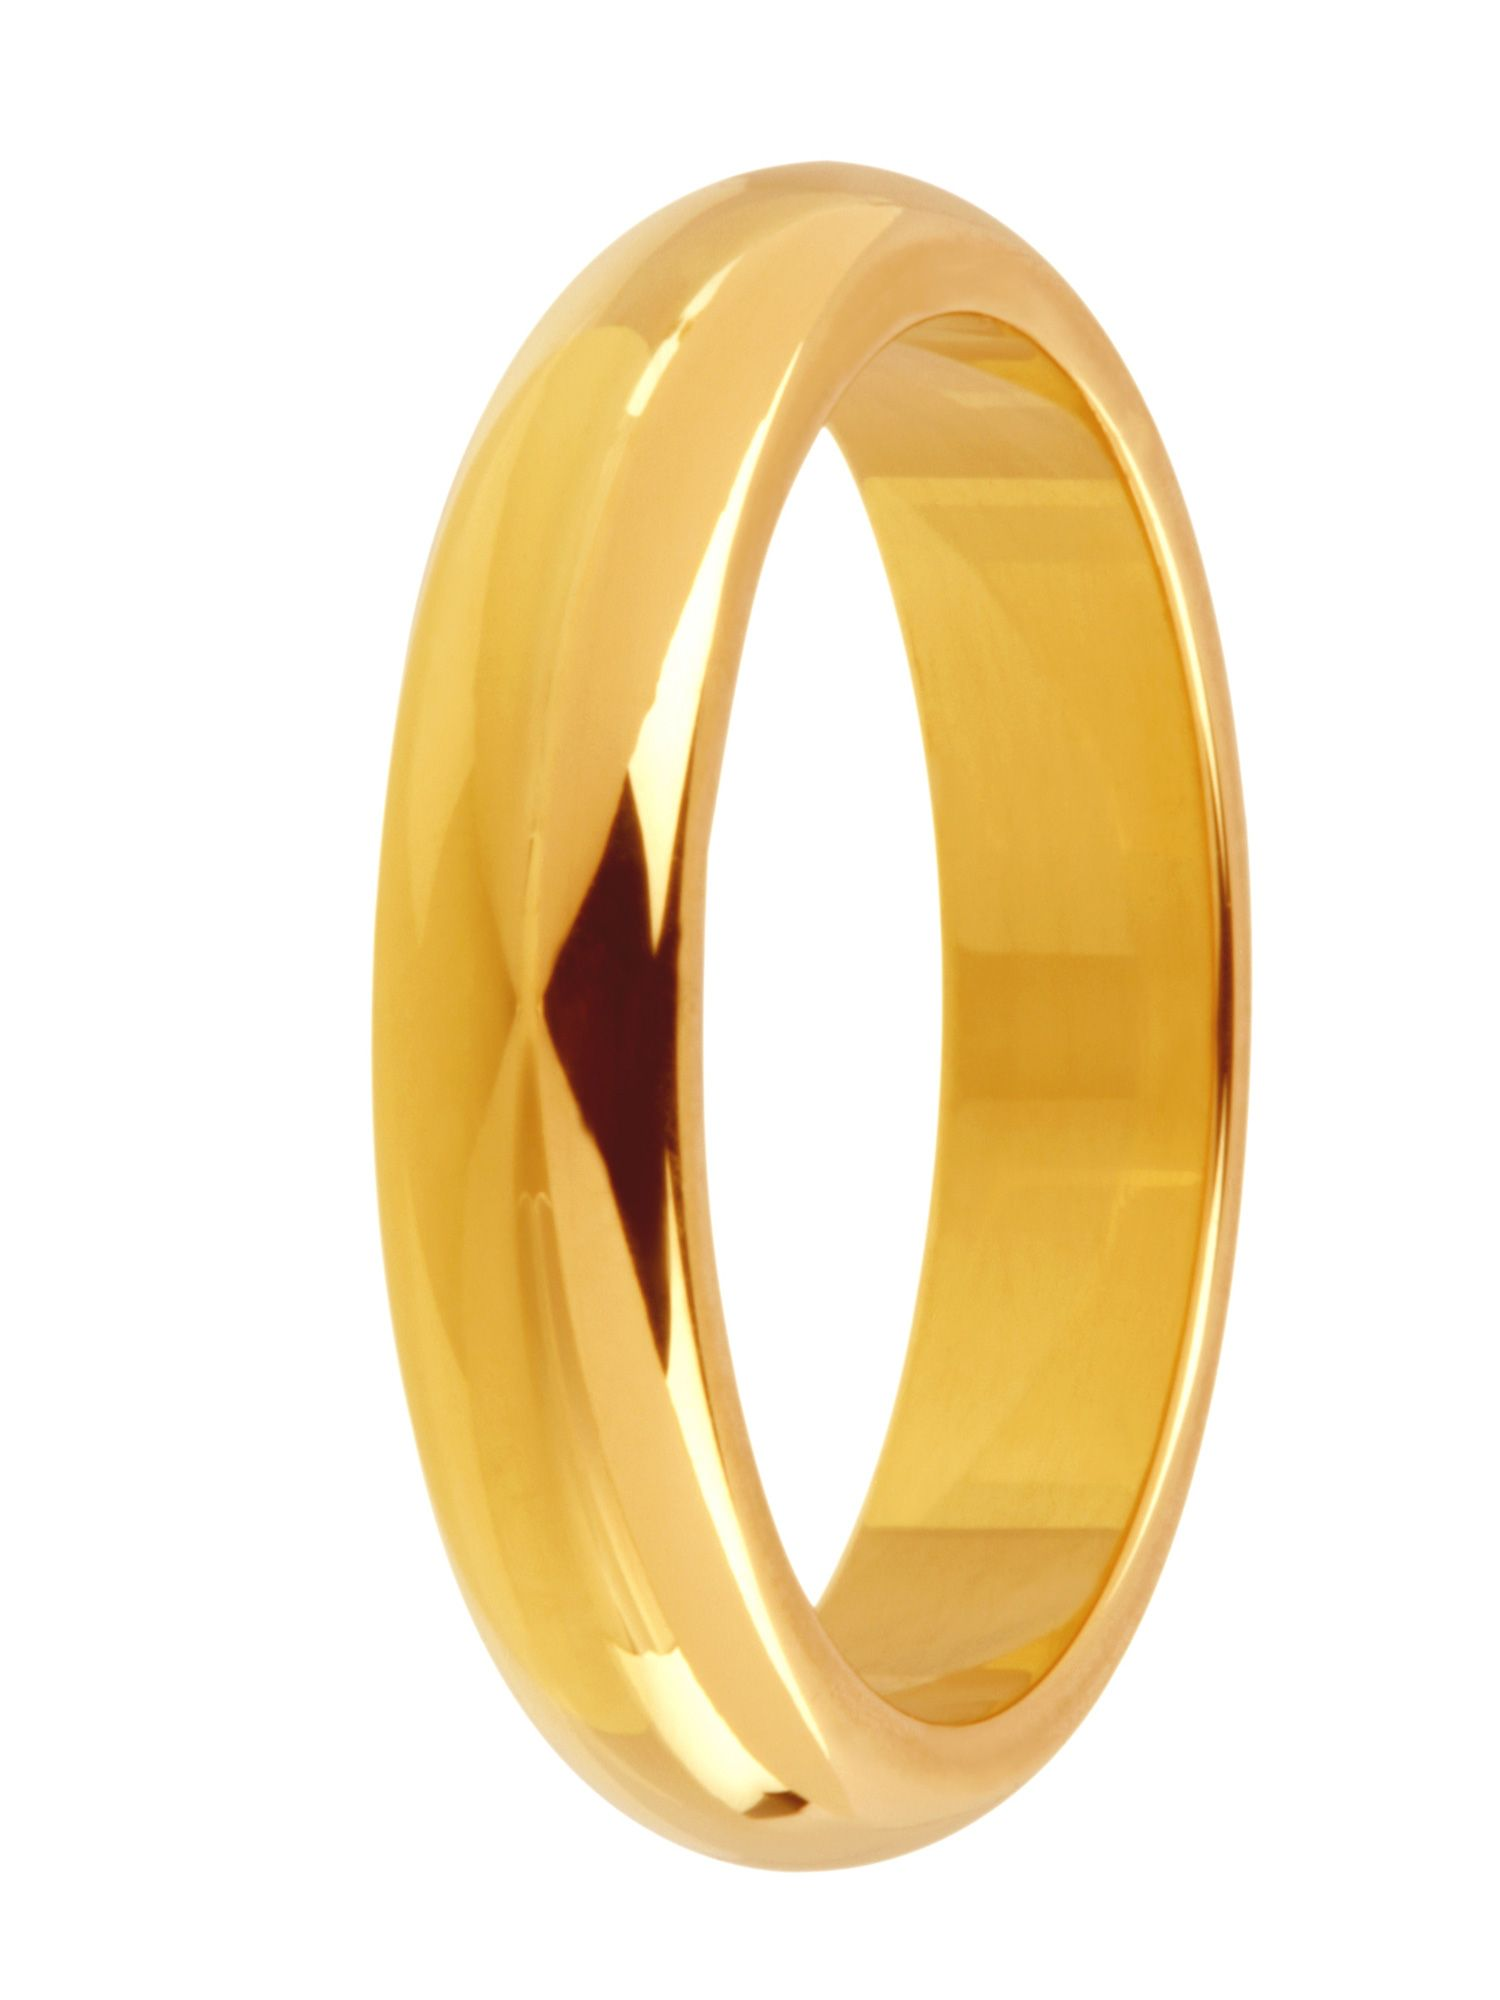 Grooms 18ct gold 4mm court wedding ring - Gold